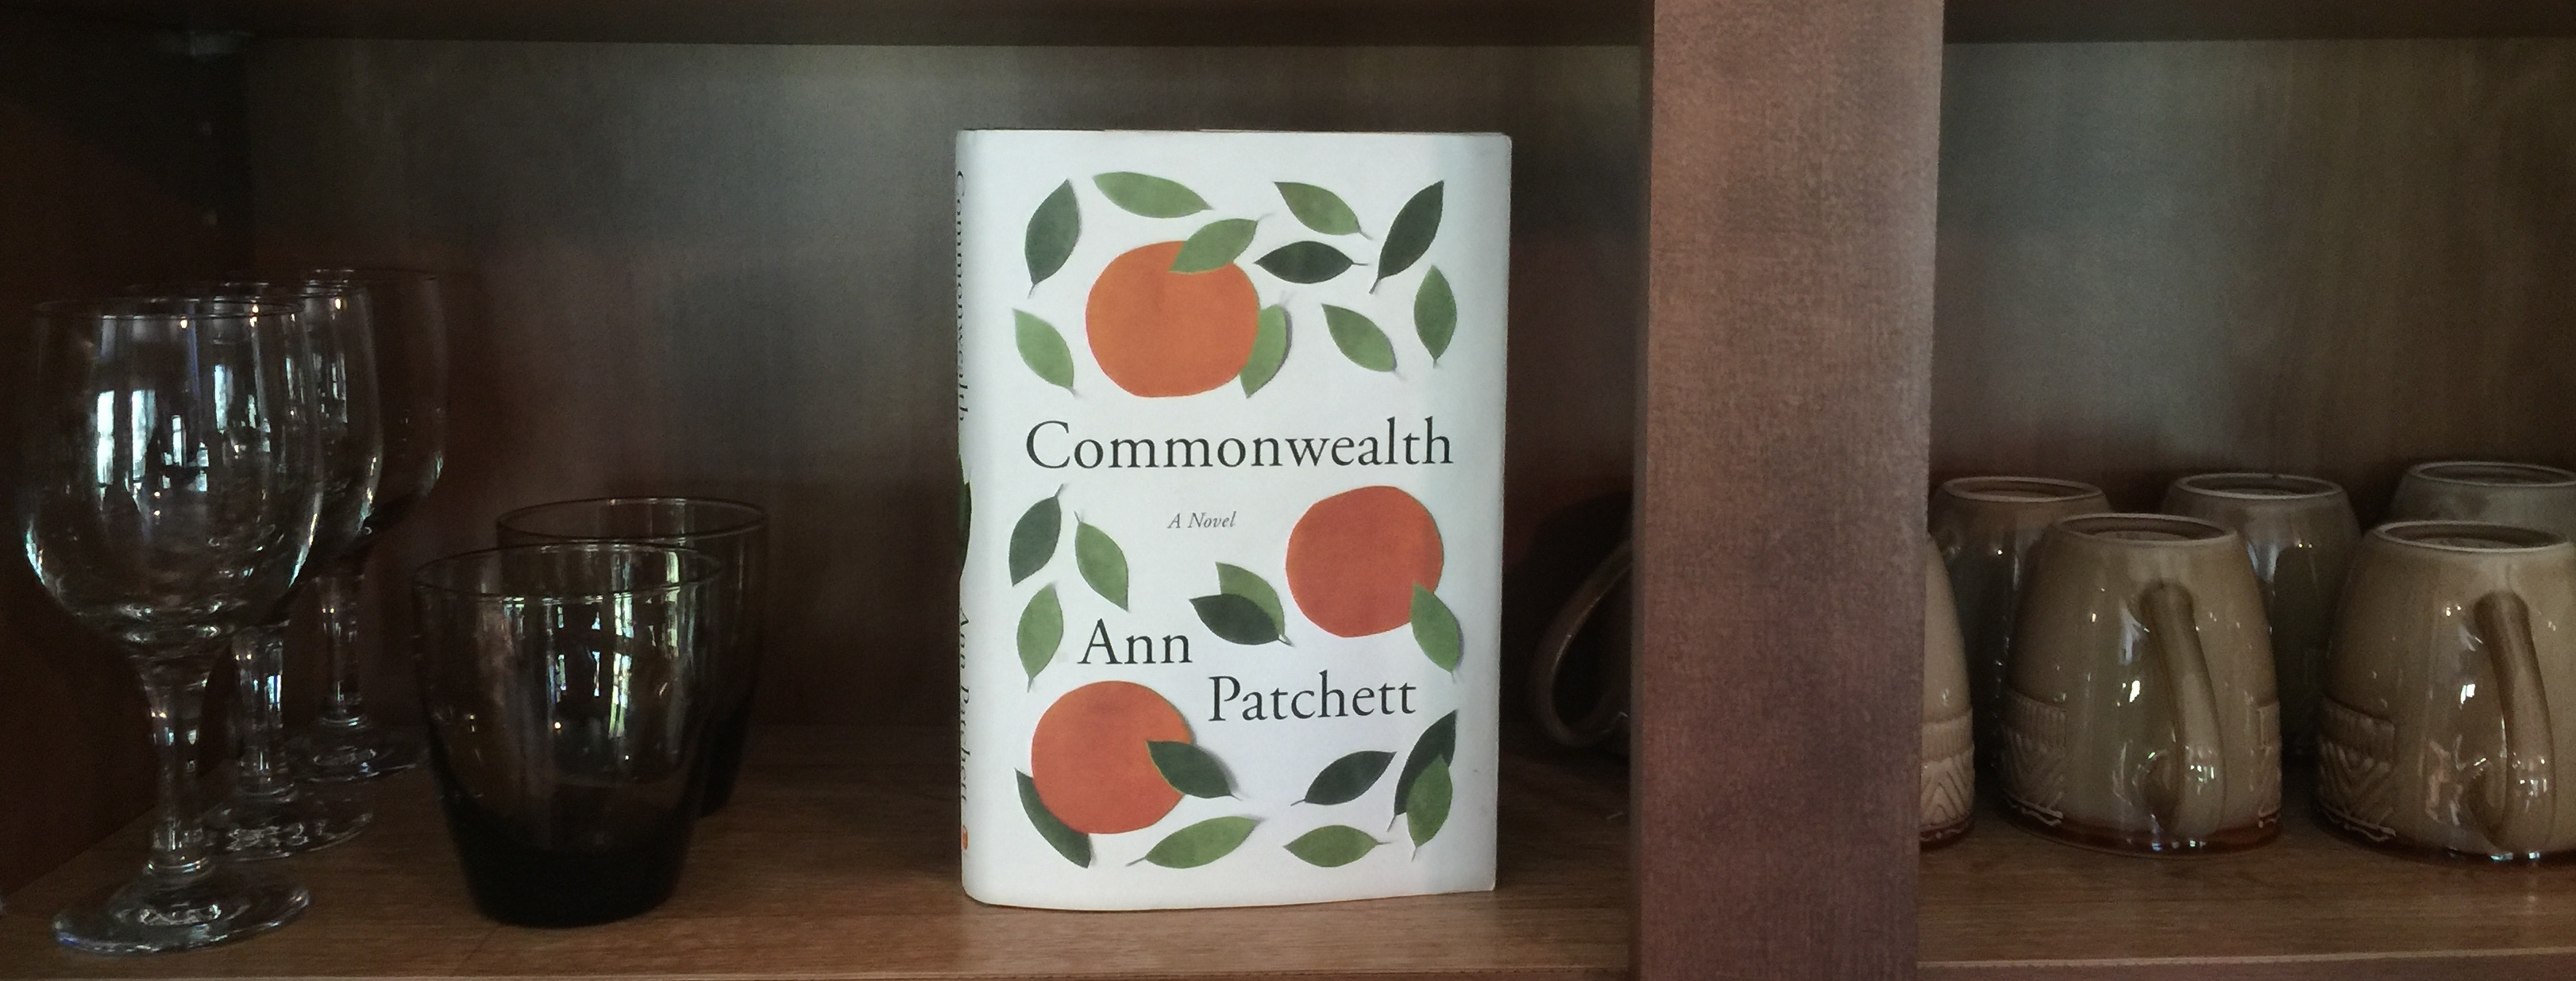 Book Review: Commonwealth by Ann Patchett